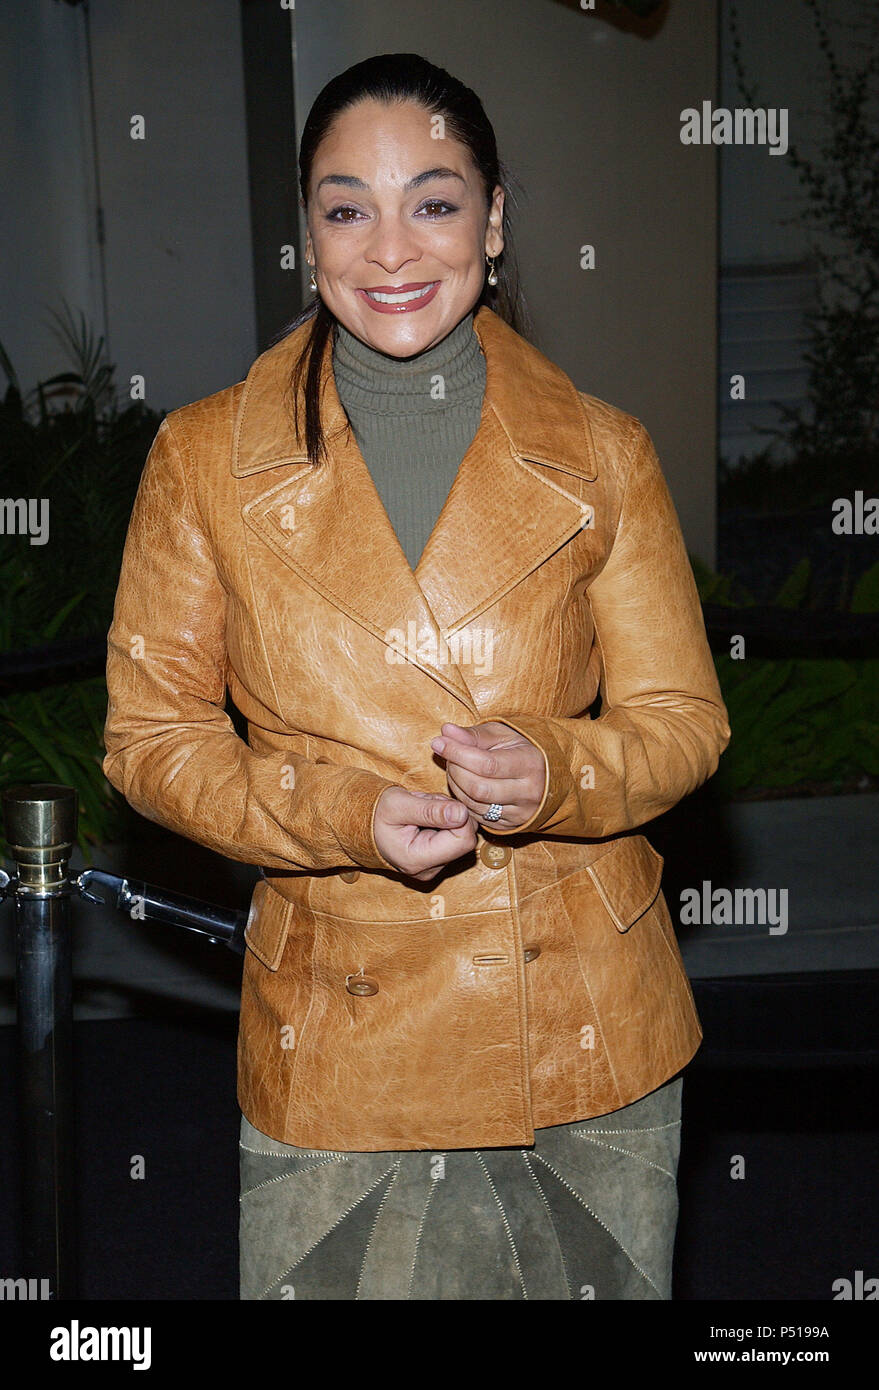 Jasmine Guy Tupac Stock Photos & Jasmine Guy Tupac Stock